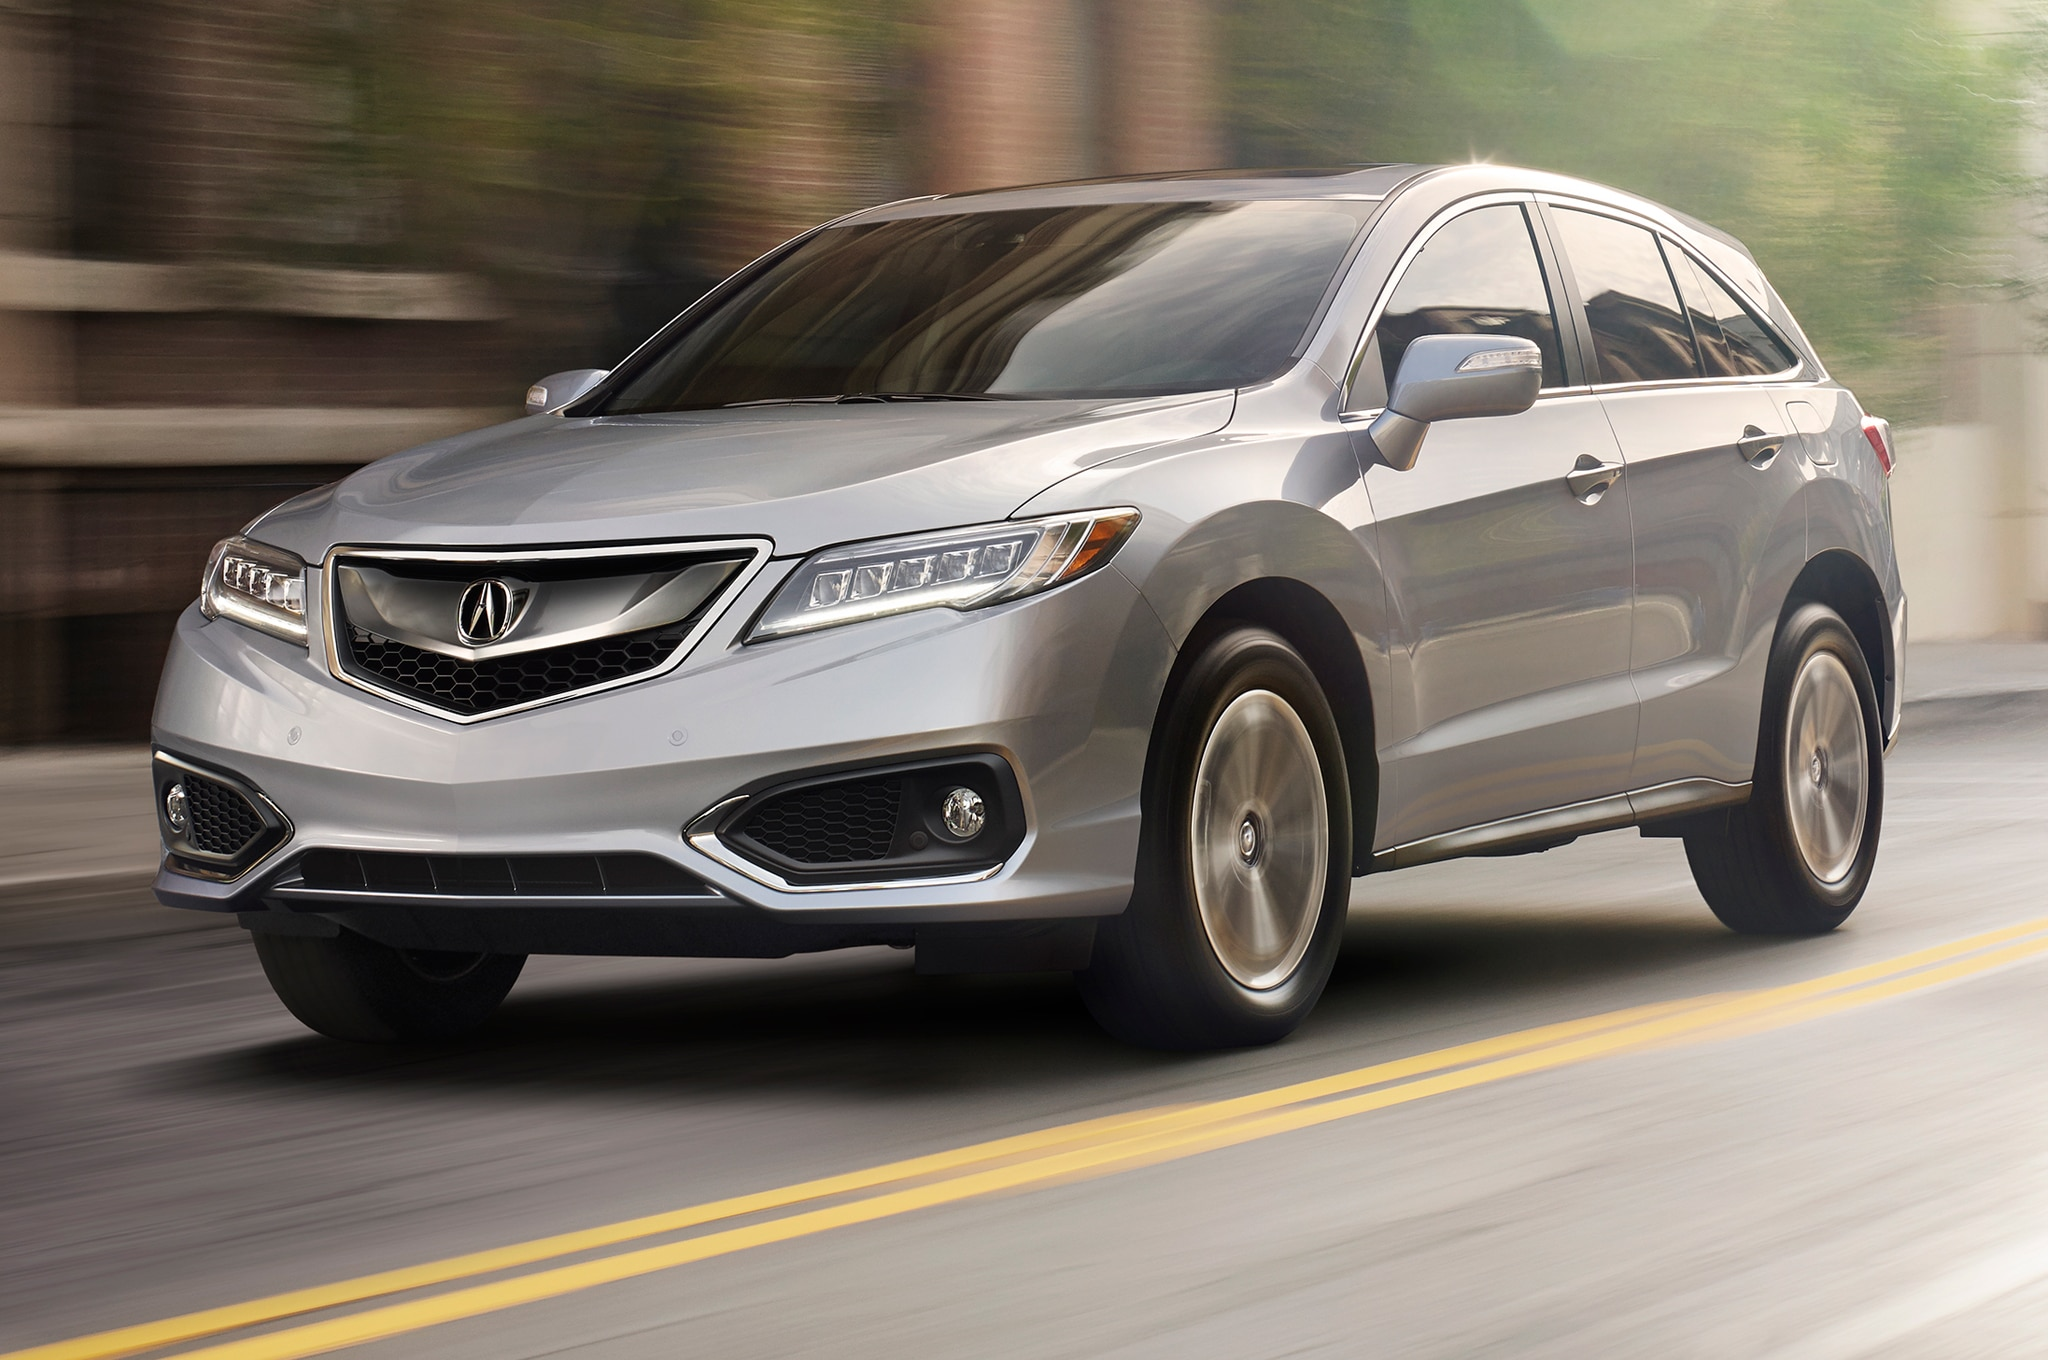 refreshed 2016 acura rdx price rises new advance package available. Black Bedroom Furniture Sets. Home Design Ideas